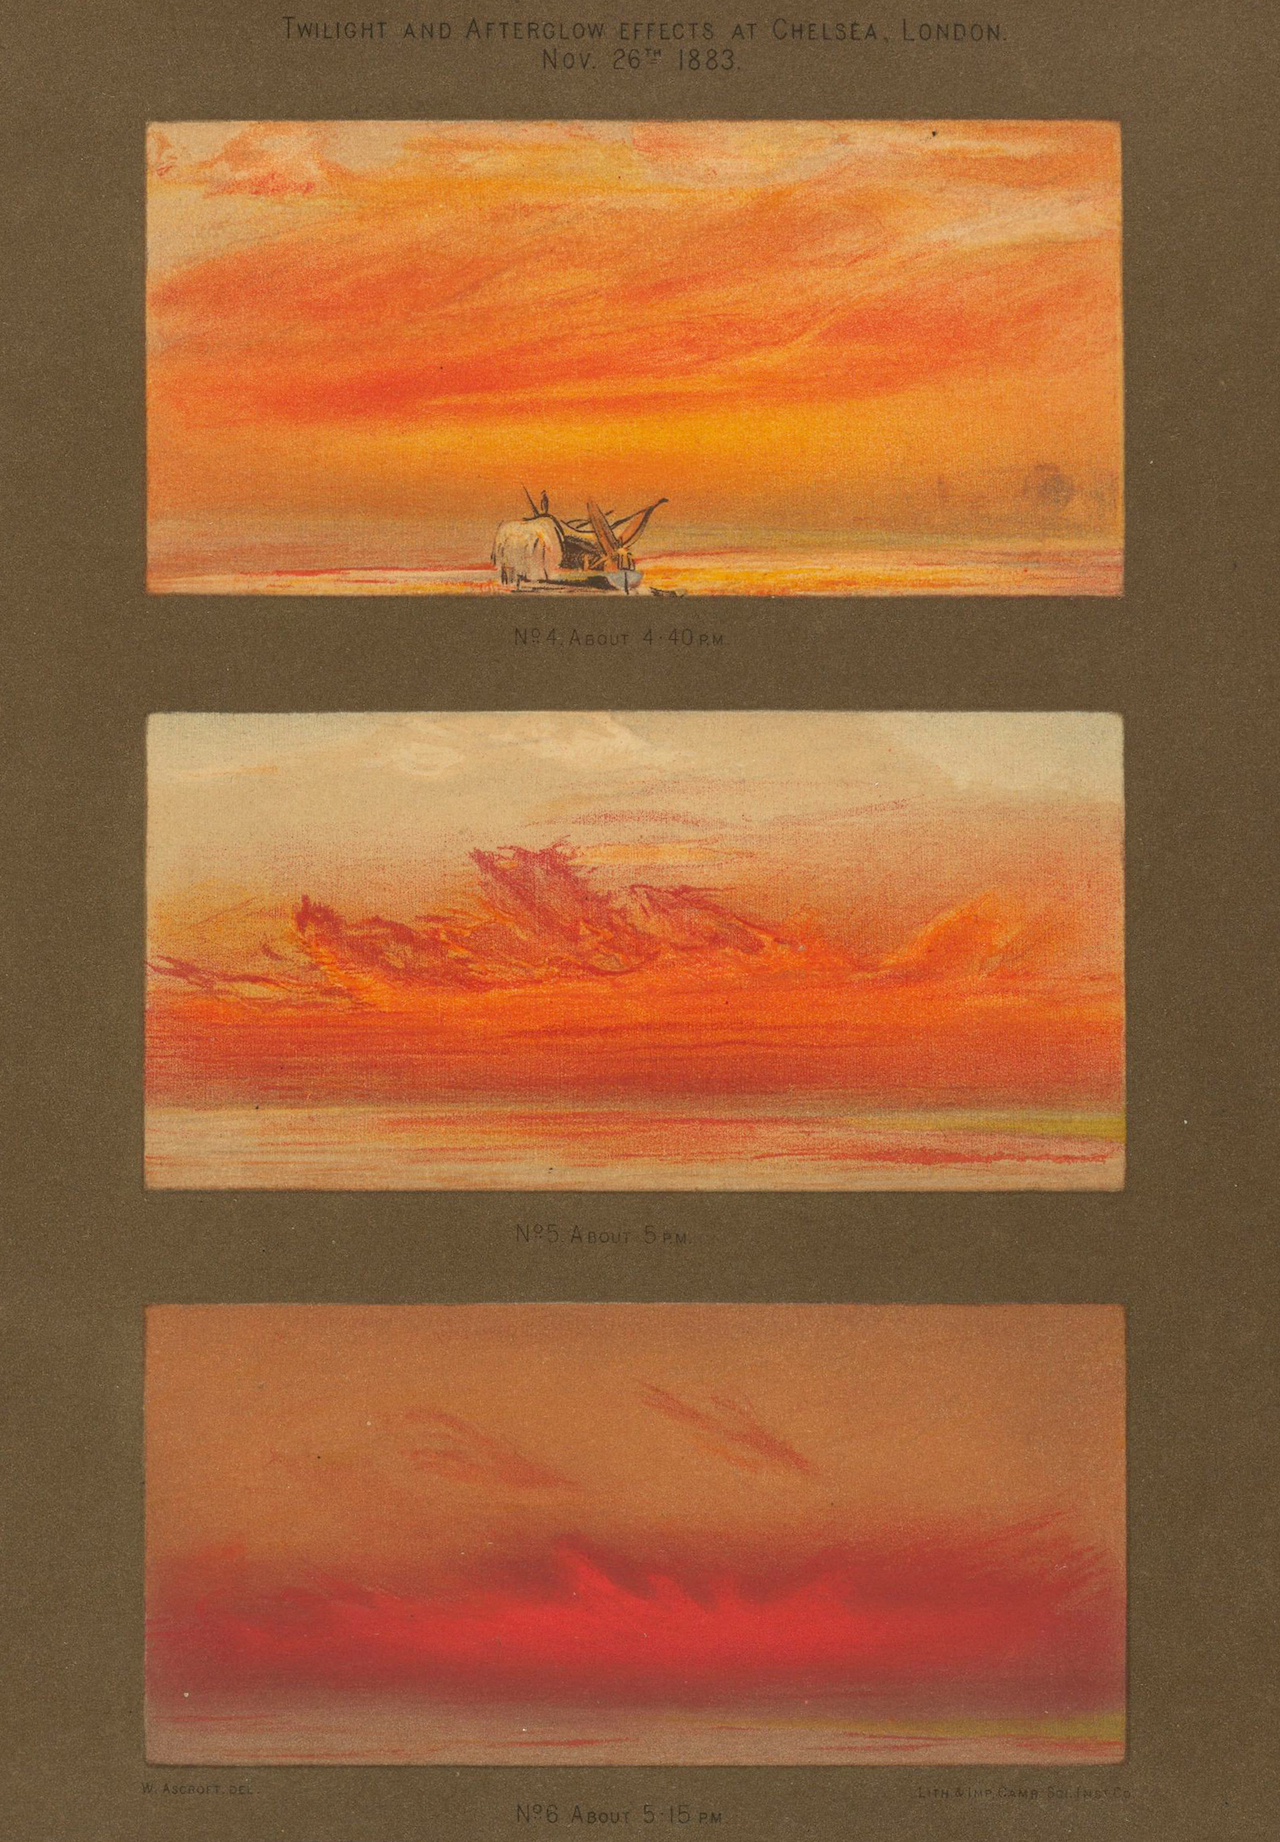 """Illustrations by William Ascroft from """"The eruption of Krakatoa, and subsequent phenomena"""" (1888) (via Houghton Library at Harvard University)"""